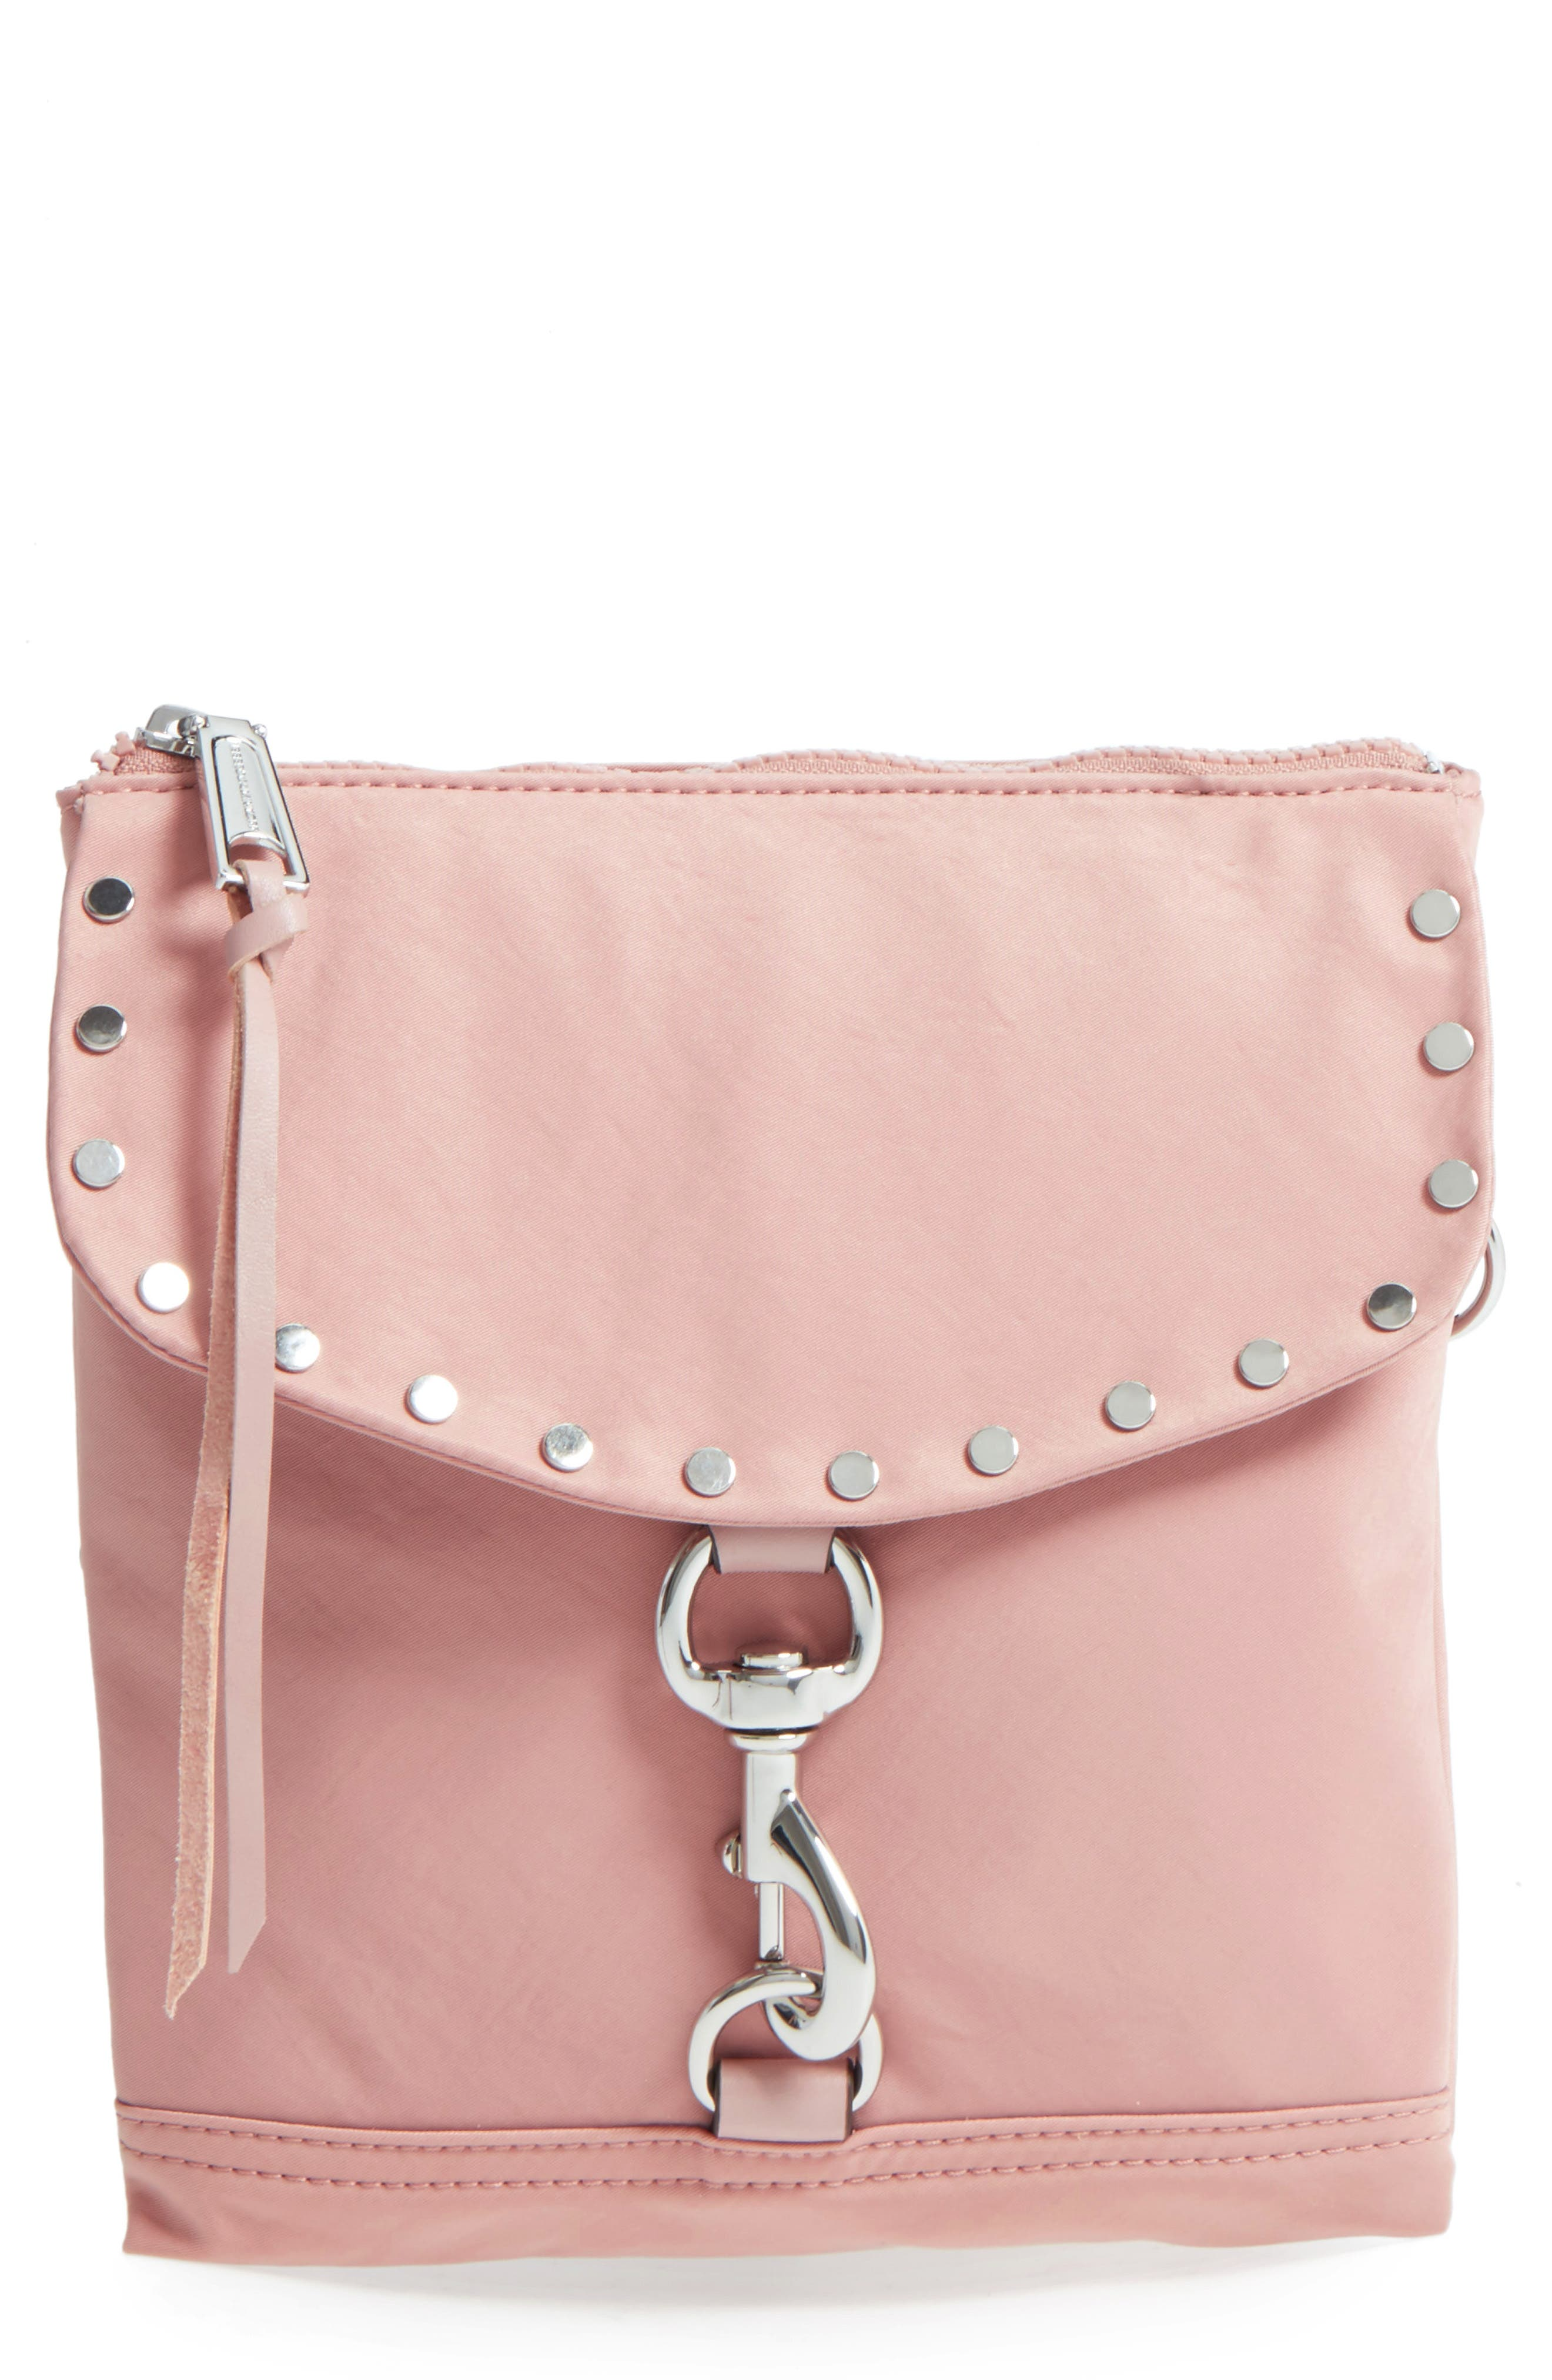 Nylon Flap Crossbody Bag,                             Main thumbnail 1, color,                             Vintage Pink